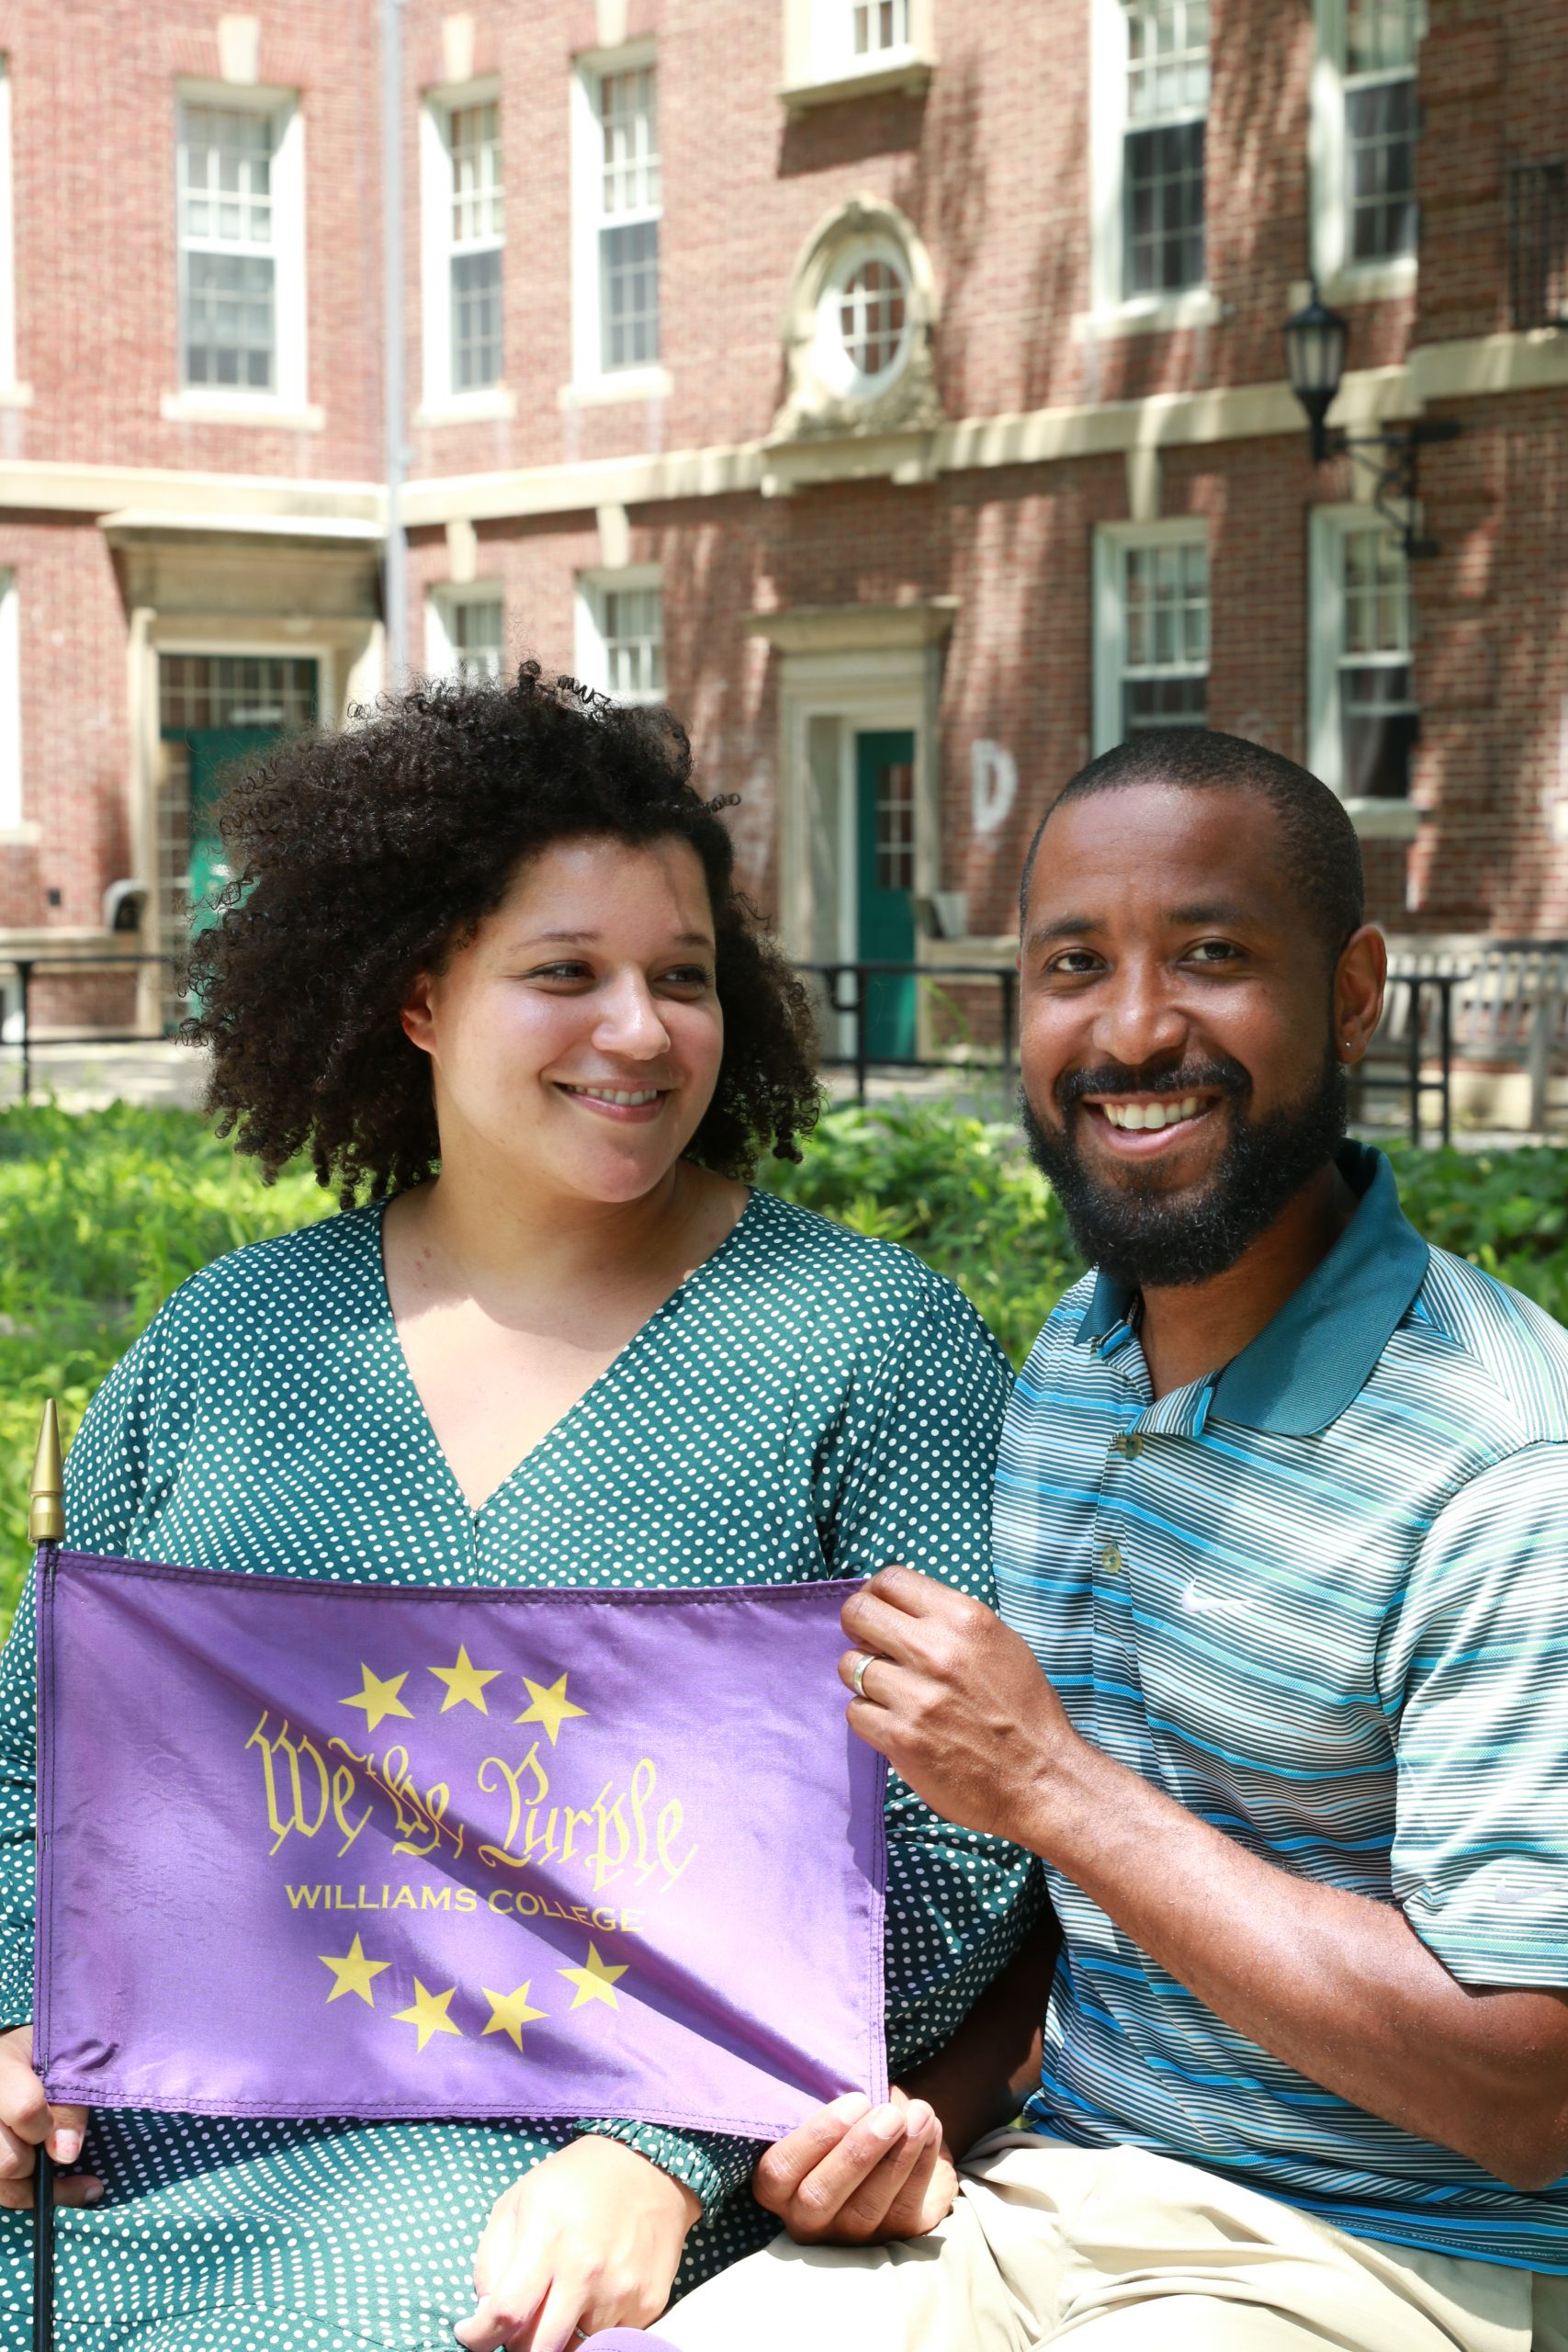 Twink and Markus holding 'We the Purple' flag while sitting in front of Williams Hall.